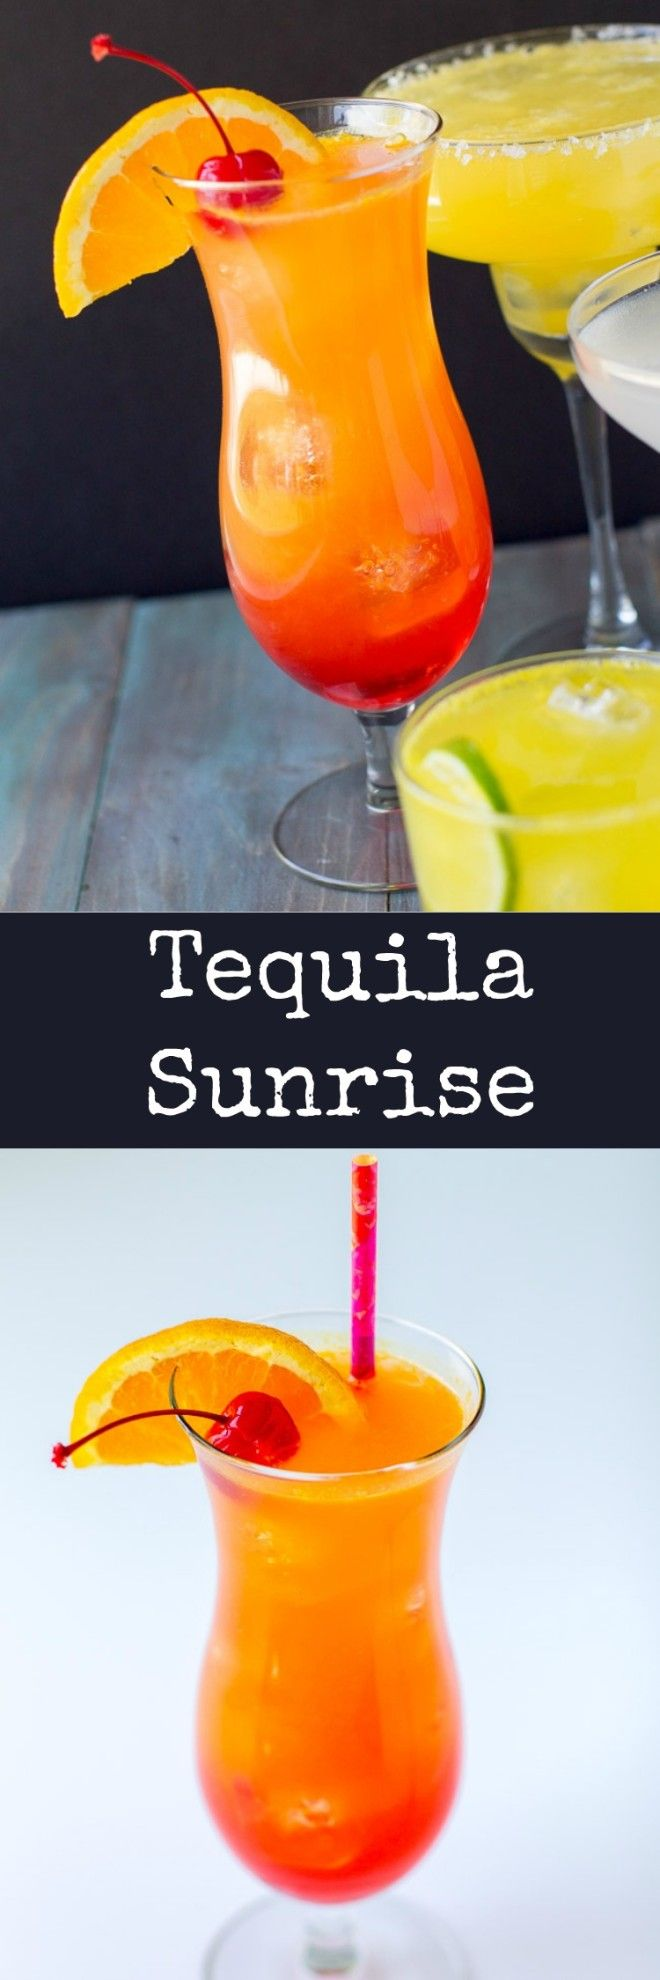 how to make tequila sunrise recipe